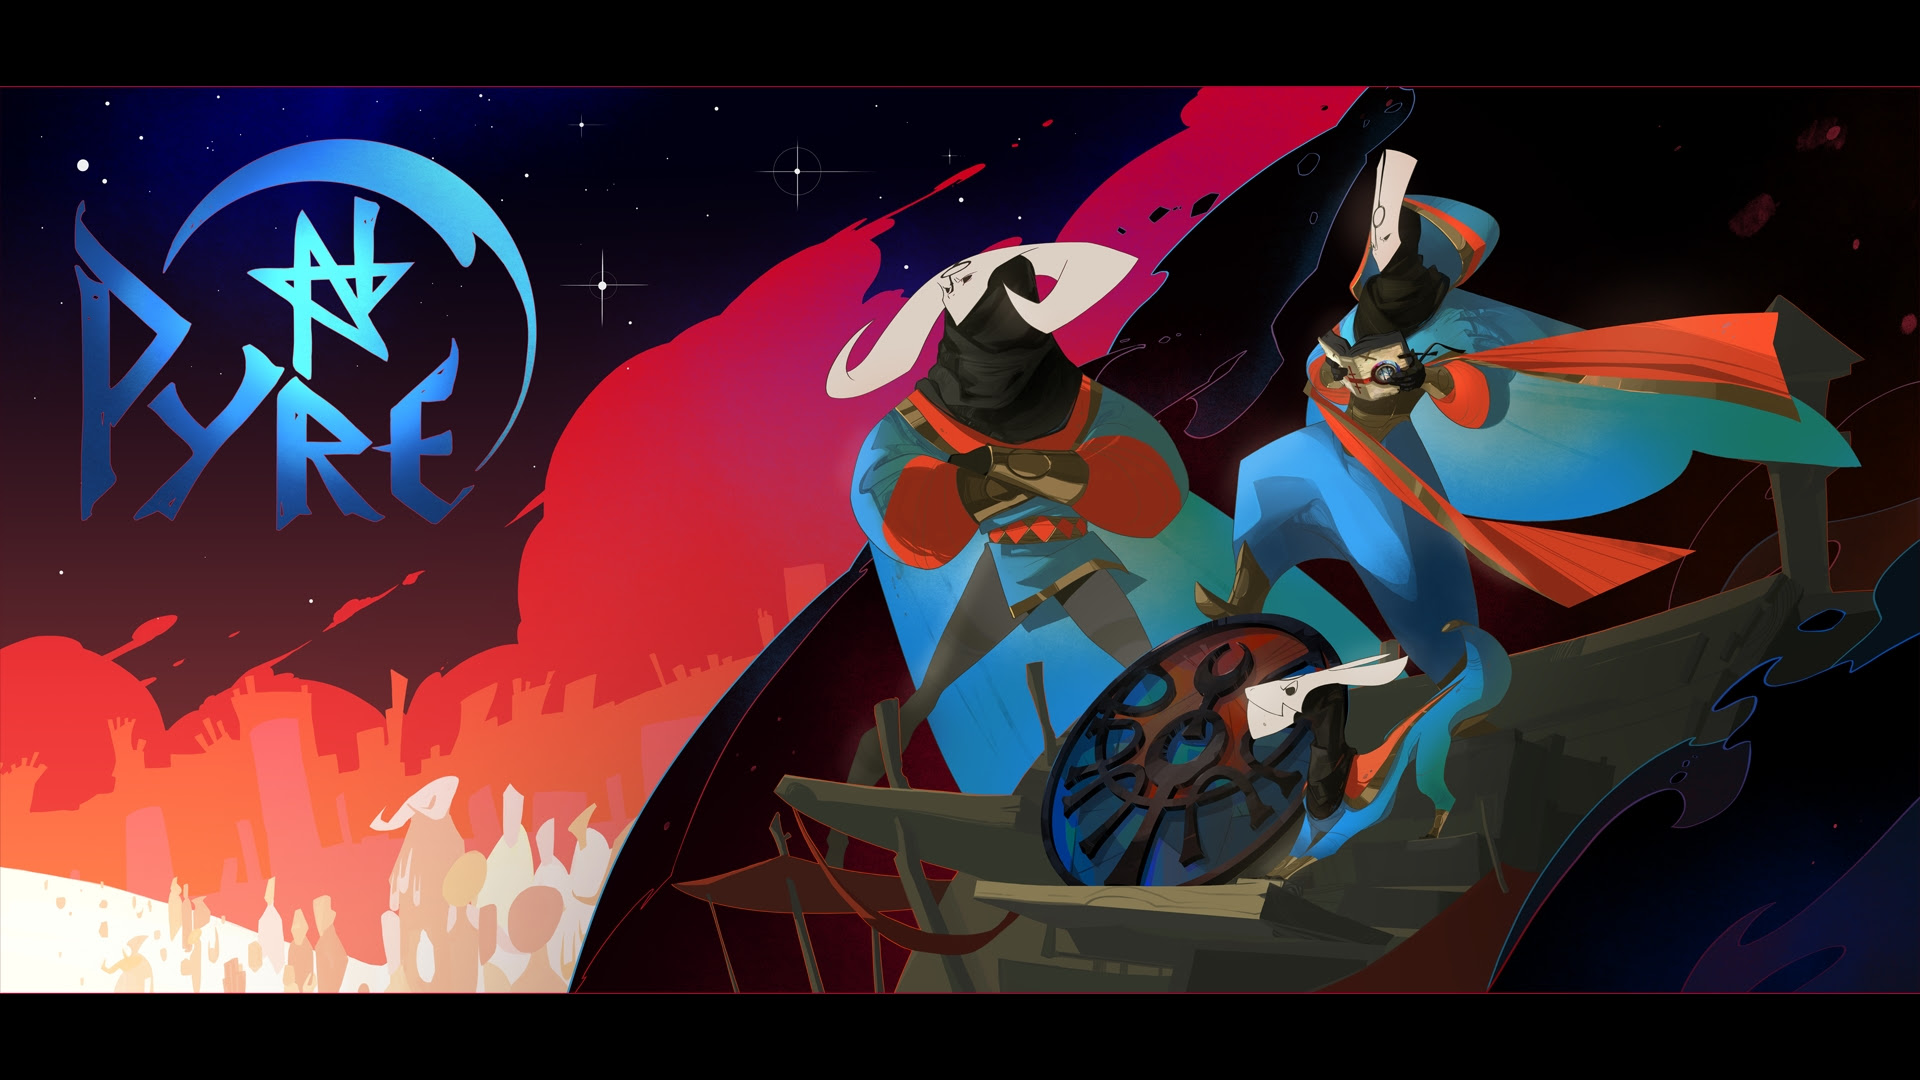 Pyre is like a mystical version of NBA Jam and I love it screenshot